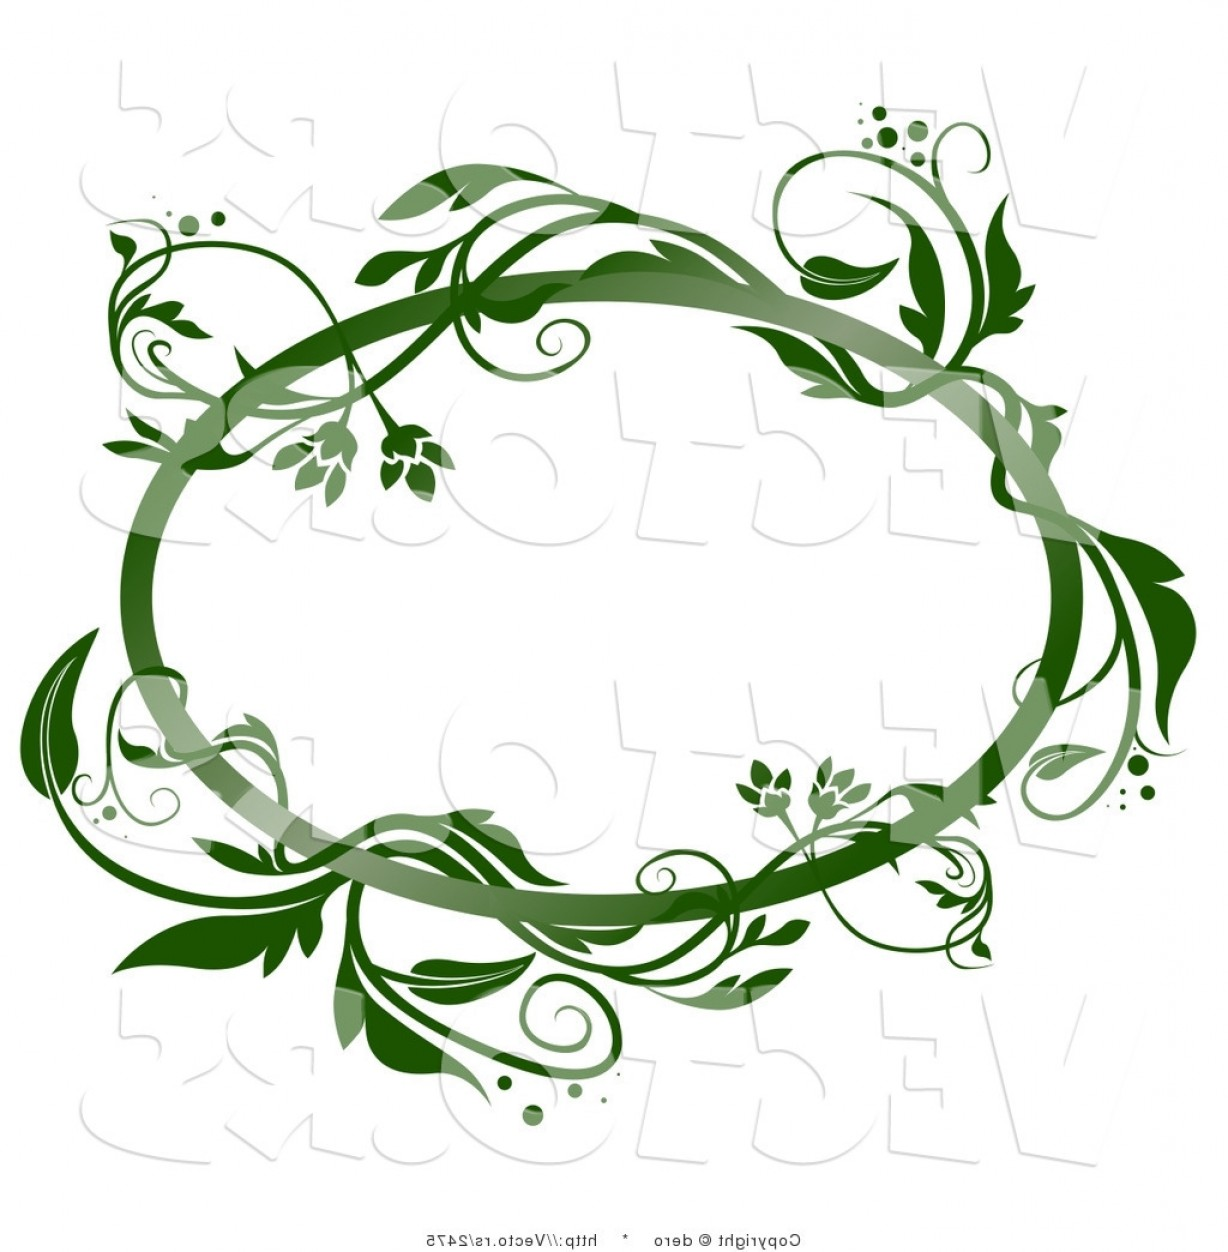 Green Oval Border Vector: Vector Of A Blank Oval Frame With Green Vines By Dero